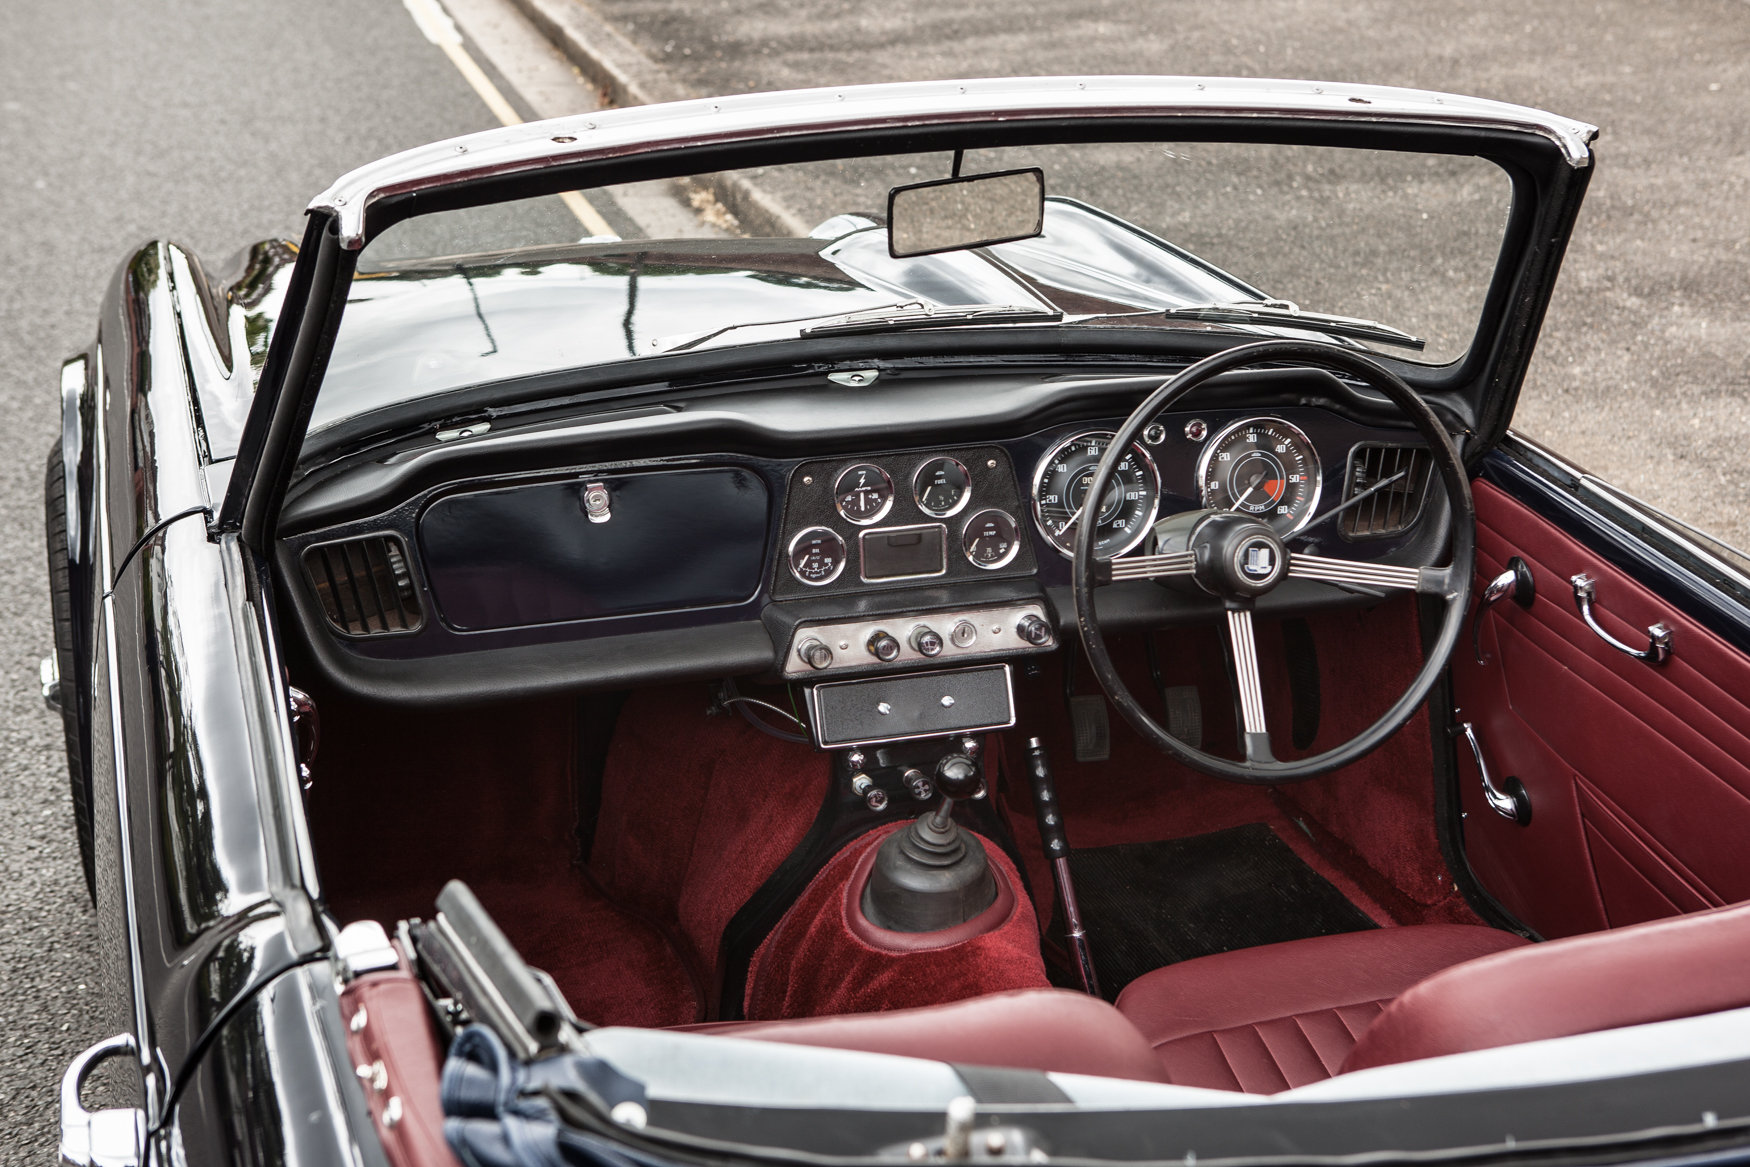 1964 Triumph TR4 with factory fitted overdrive SOLD (picture 3 of 5)